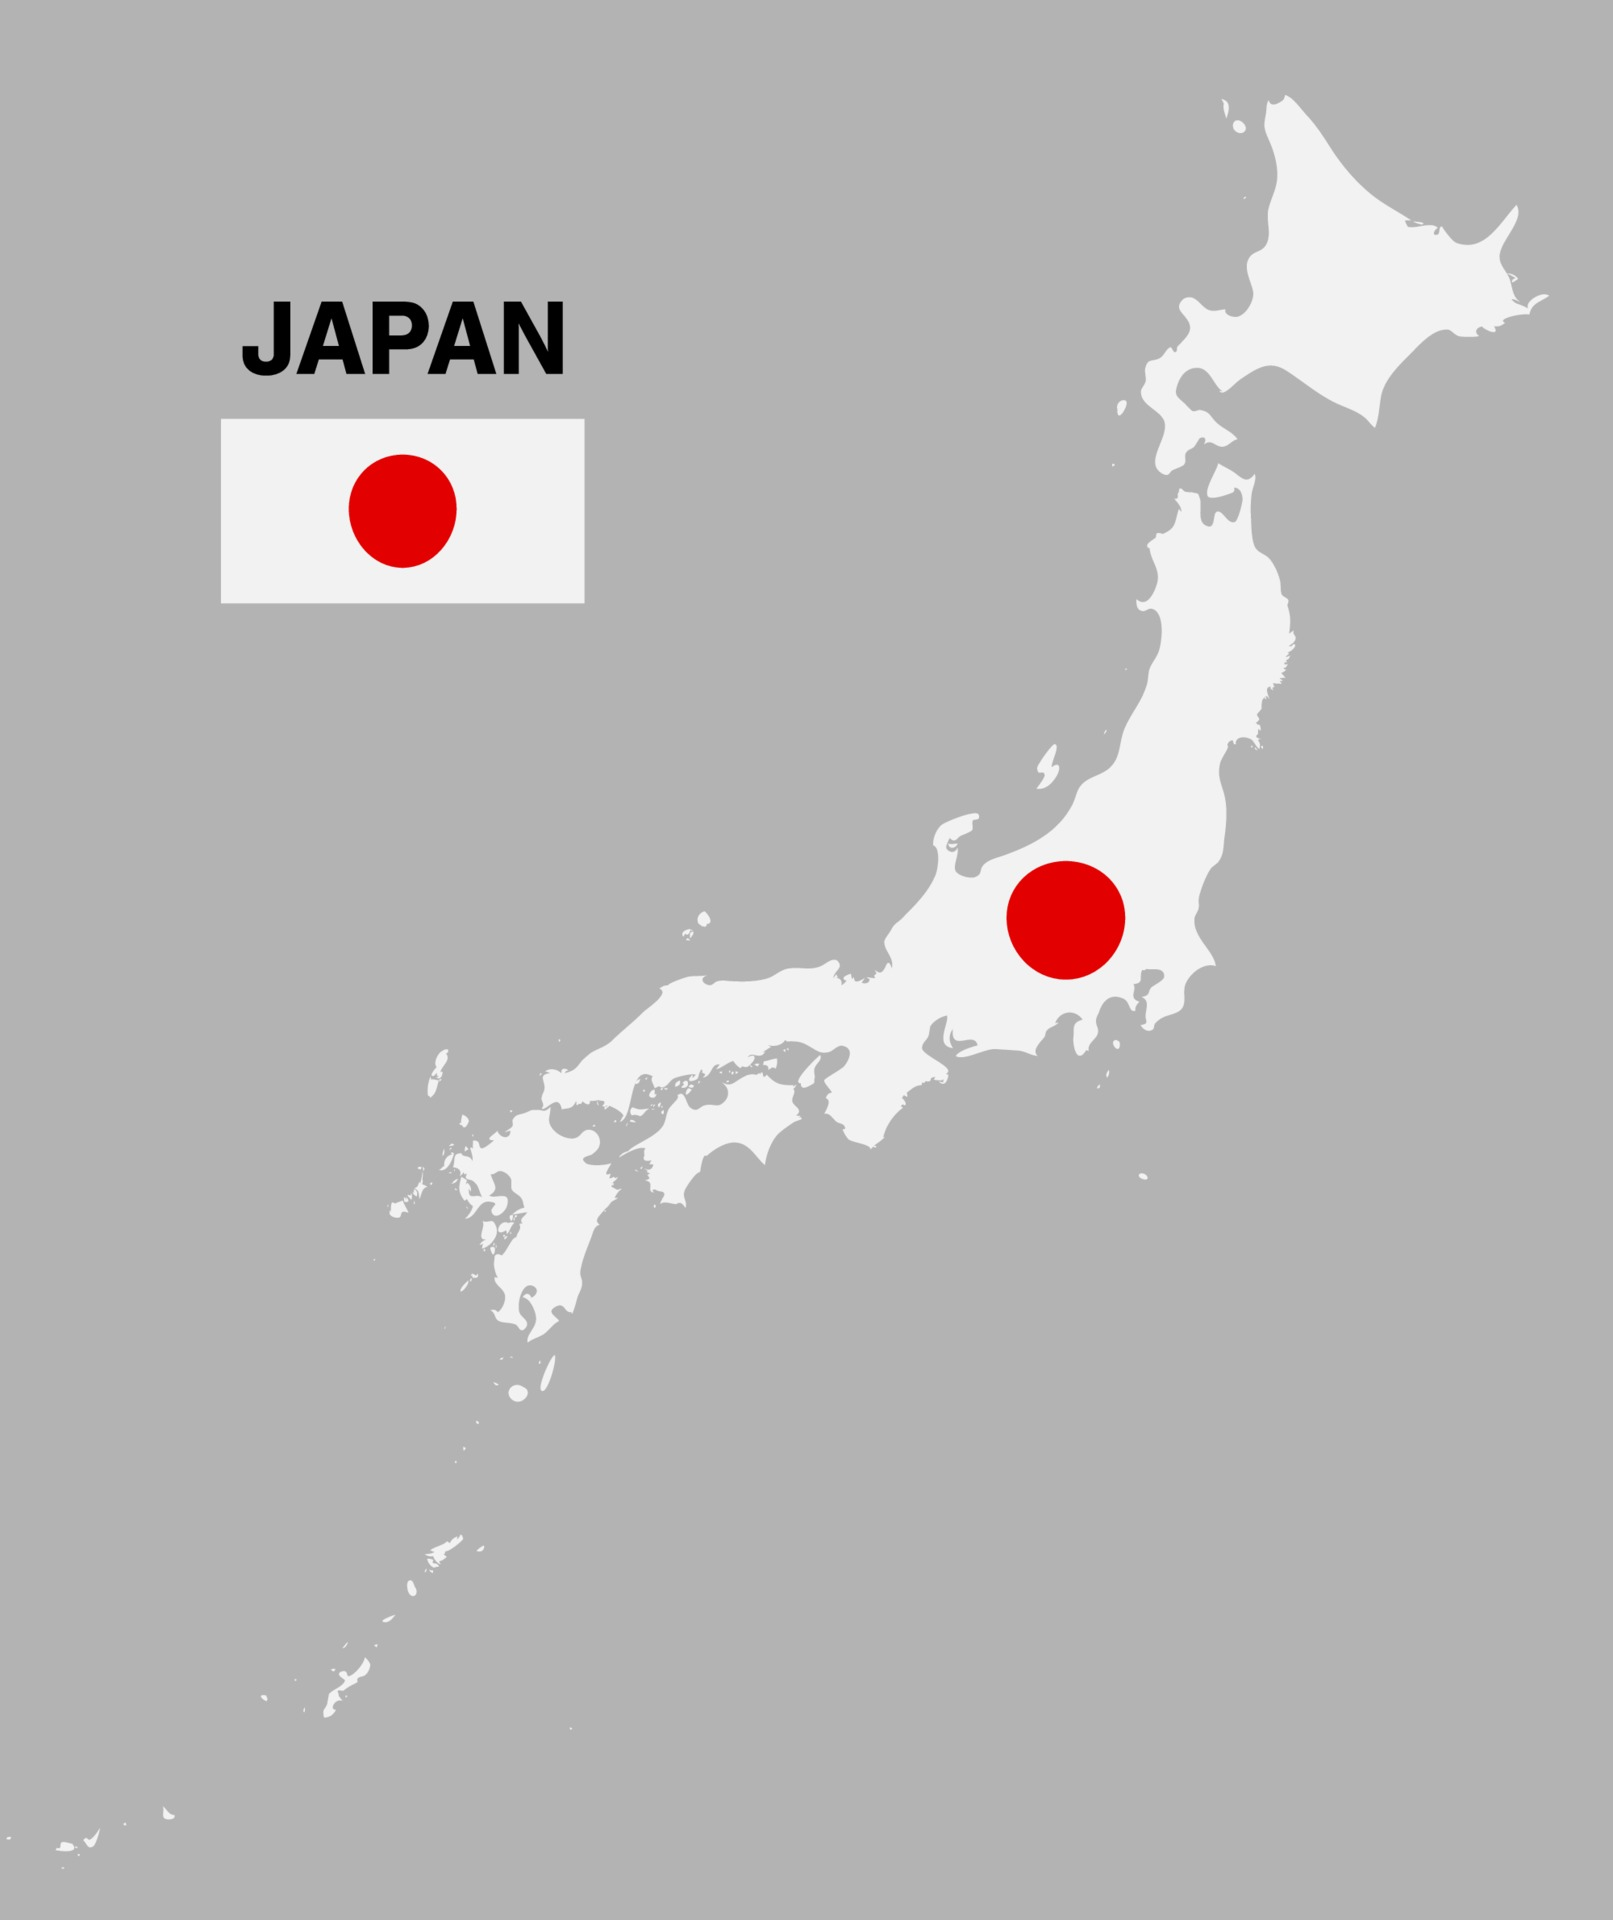 Cartina Giappone In Italiano.Japan Map With Flag Isolated Vector Eps10 2264445 Vector Art At Vecteezy